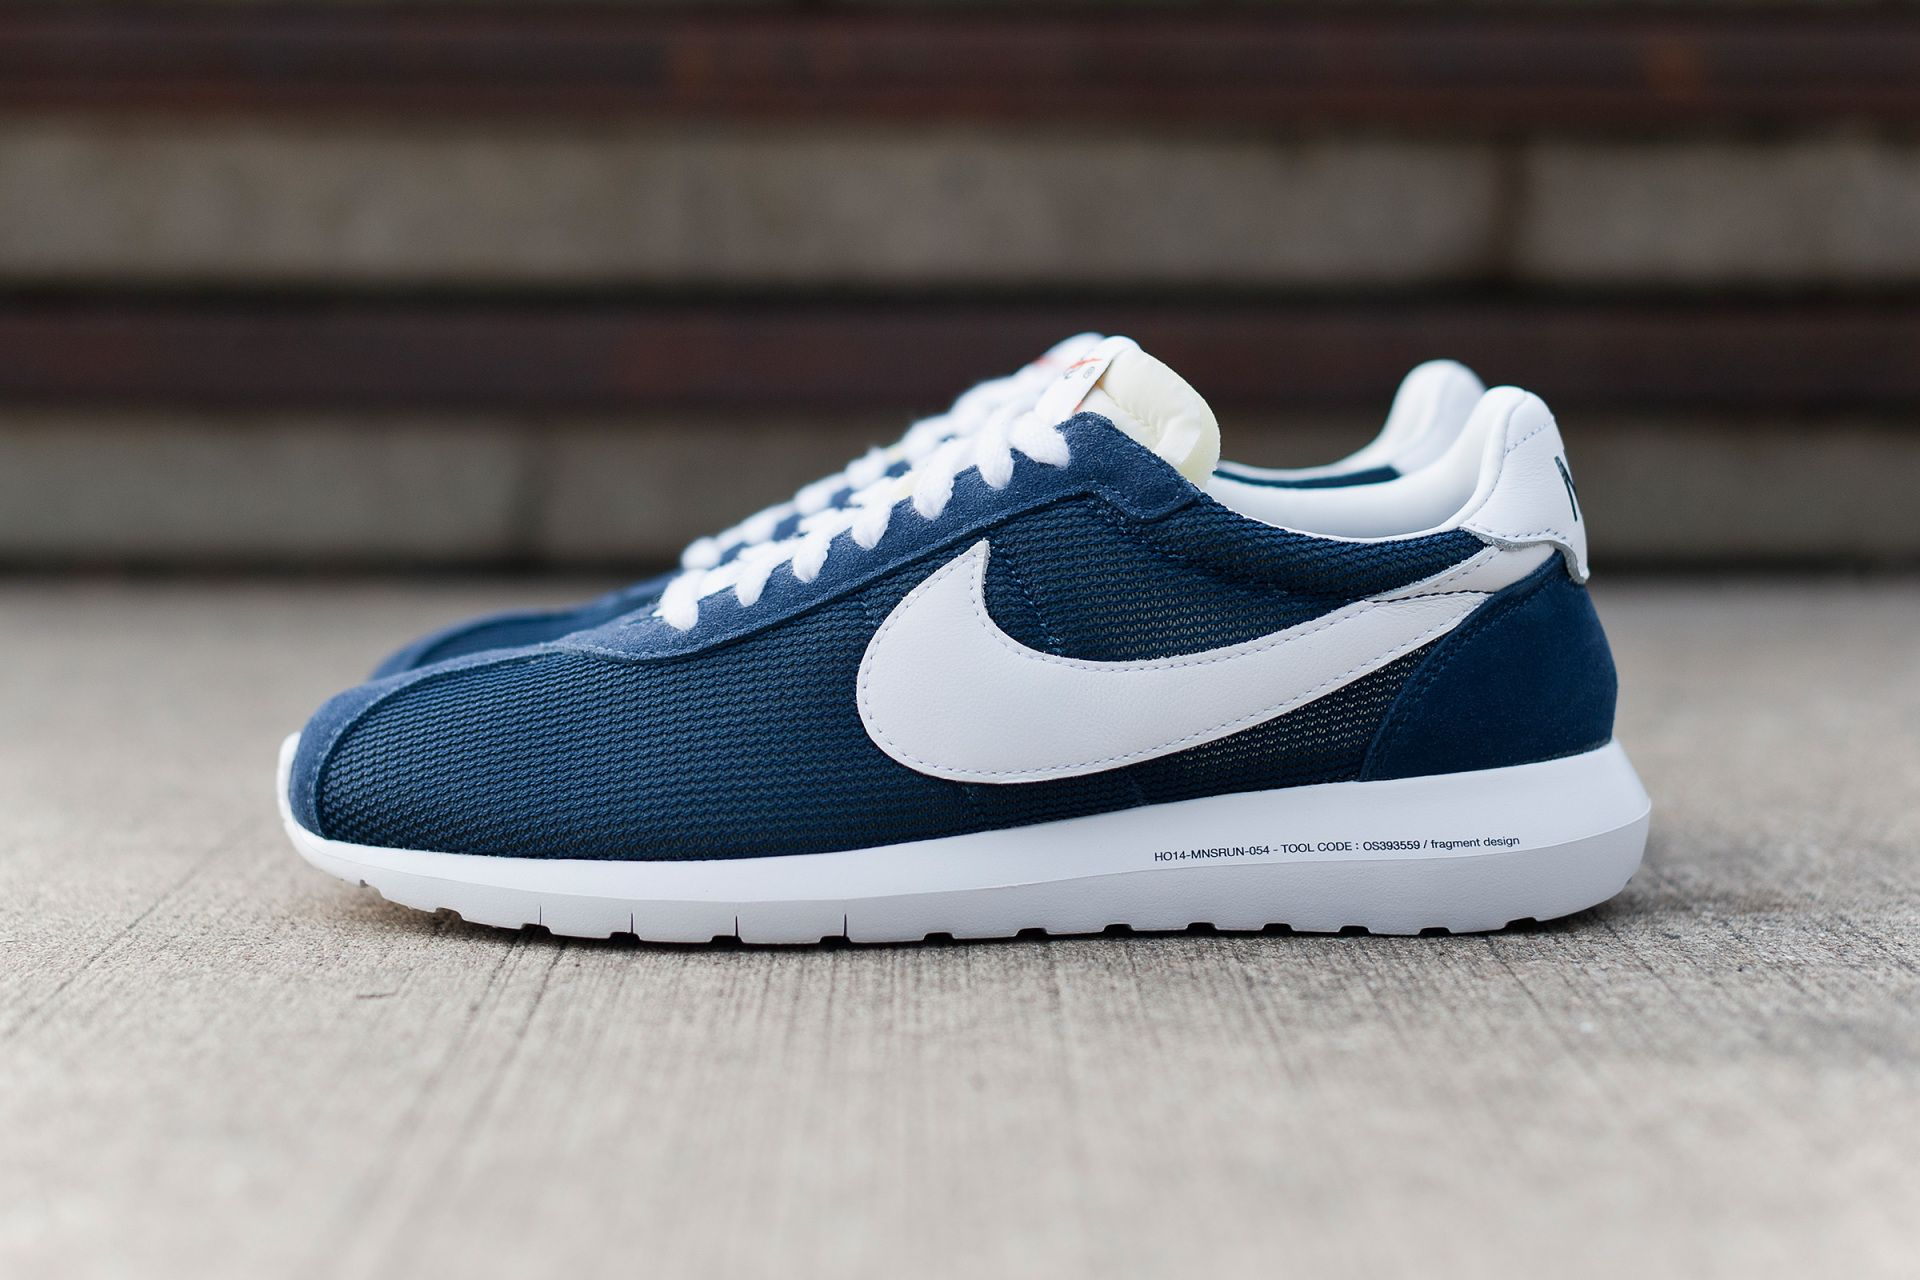 Nike Roshe Courir Fragment Chaussures Hommes Jeans Bleu Blanc Chaud